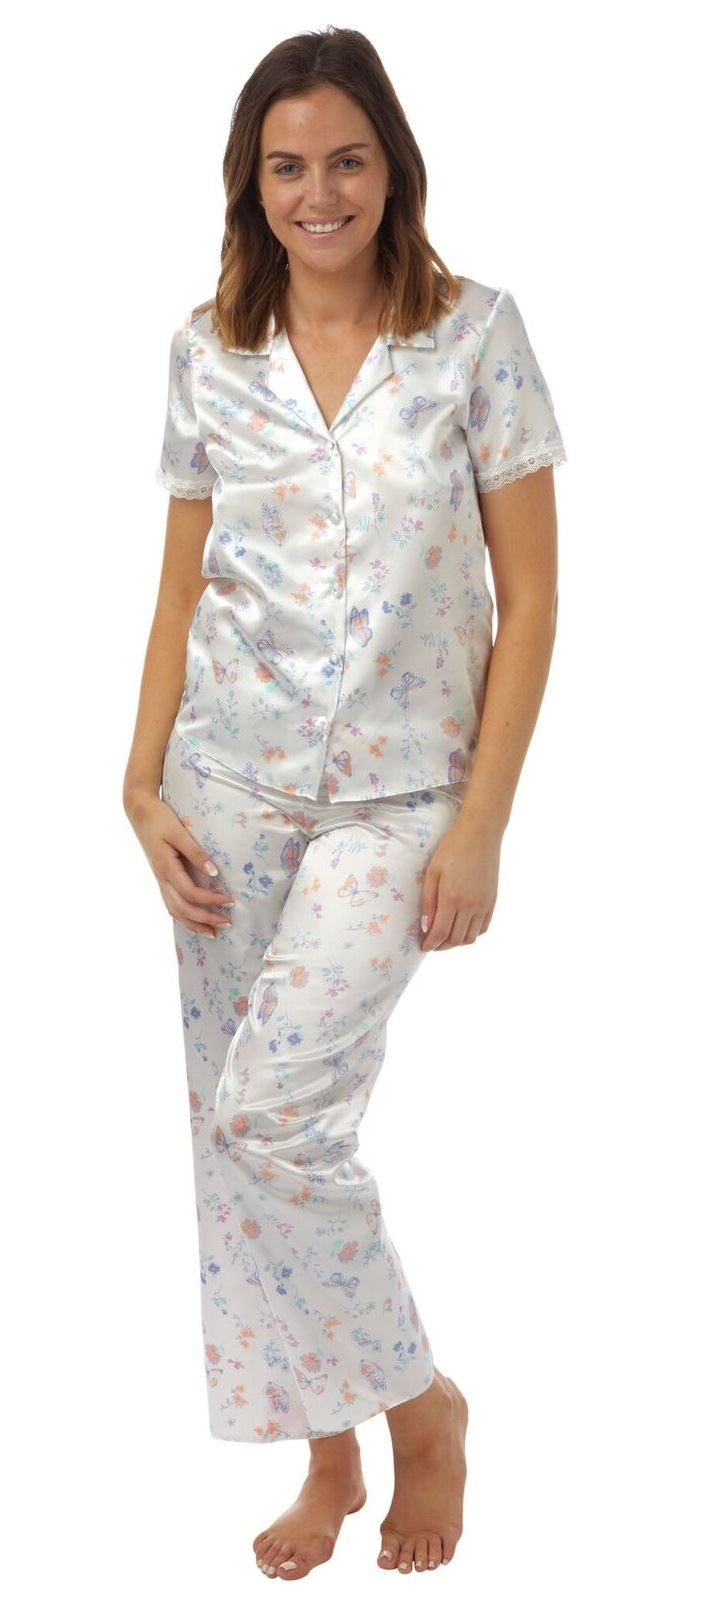 ladies night dress pyjamas - photo #27